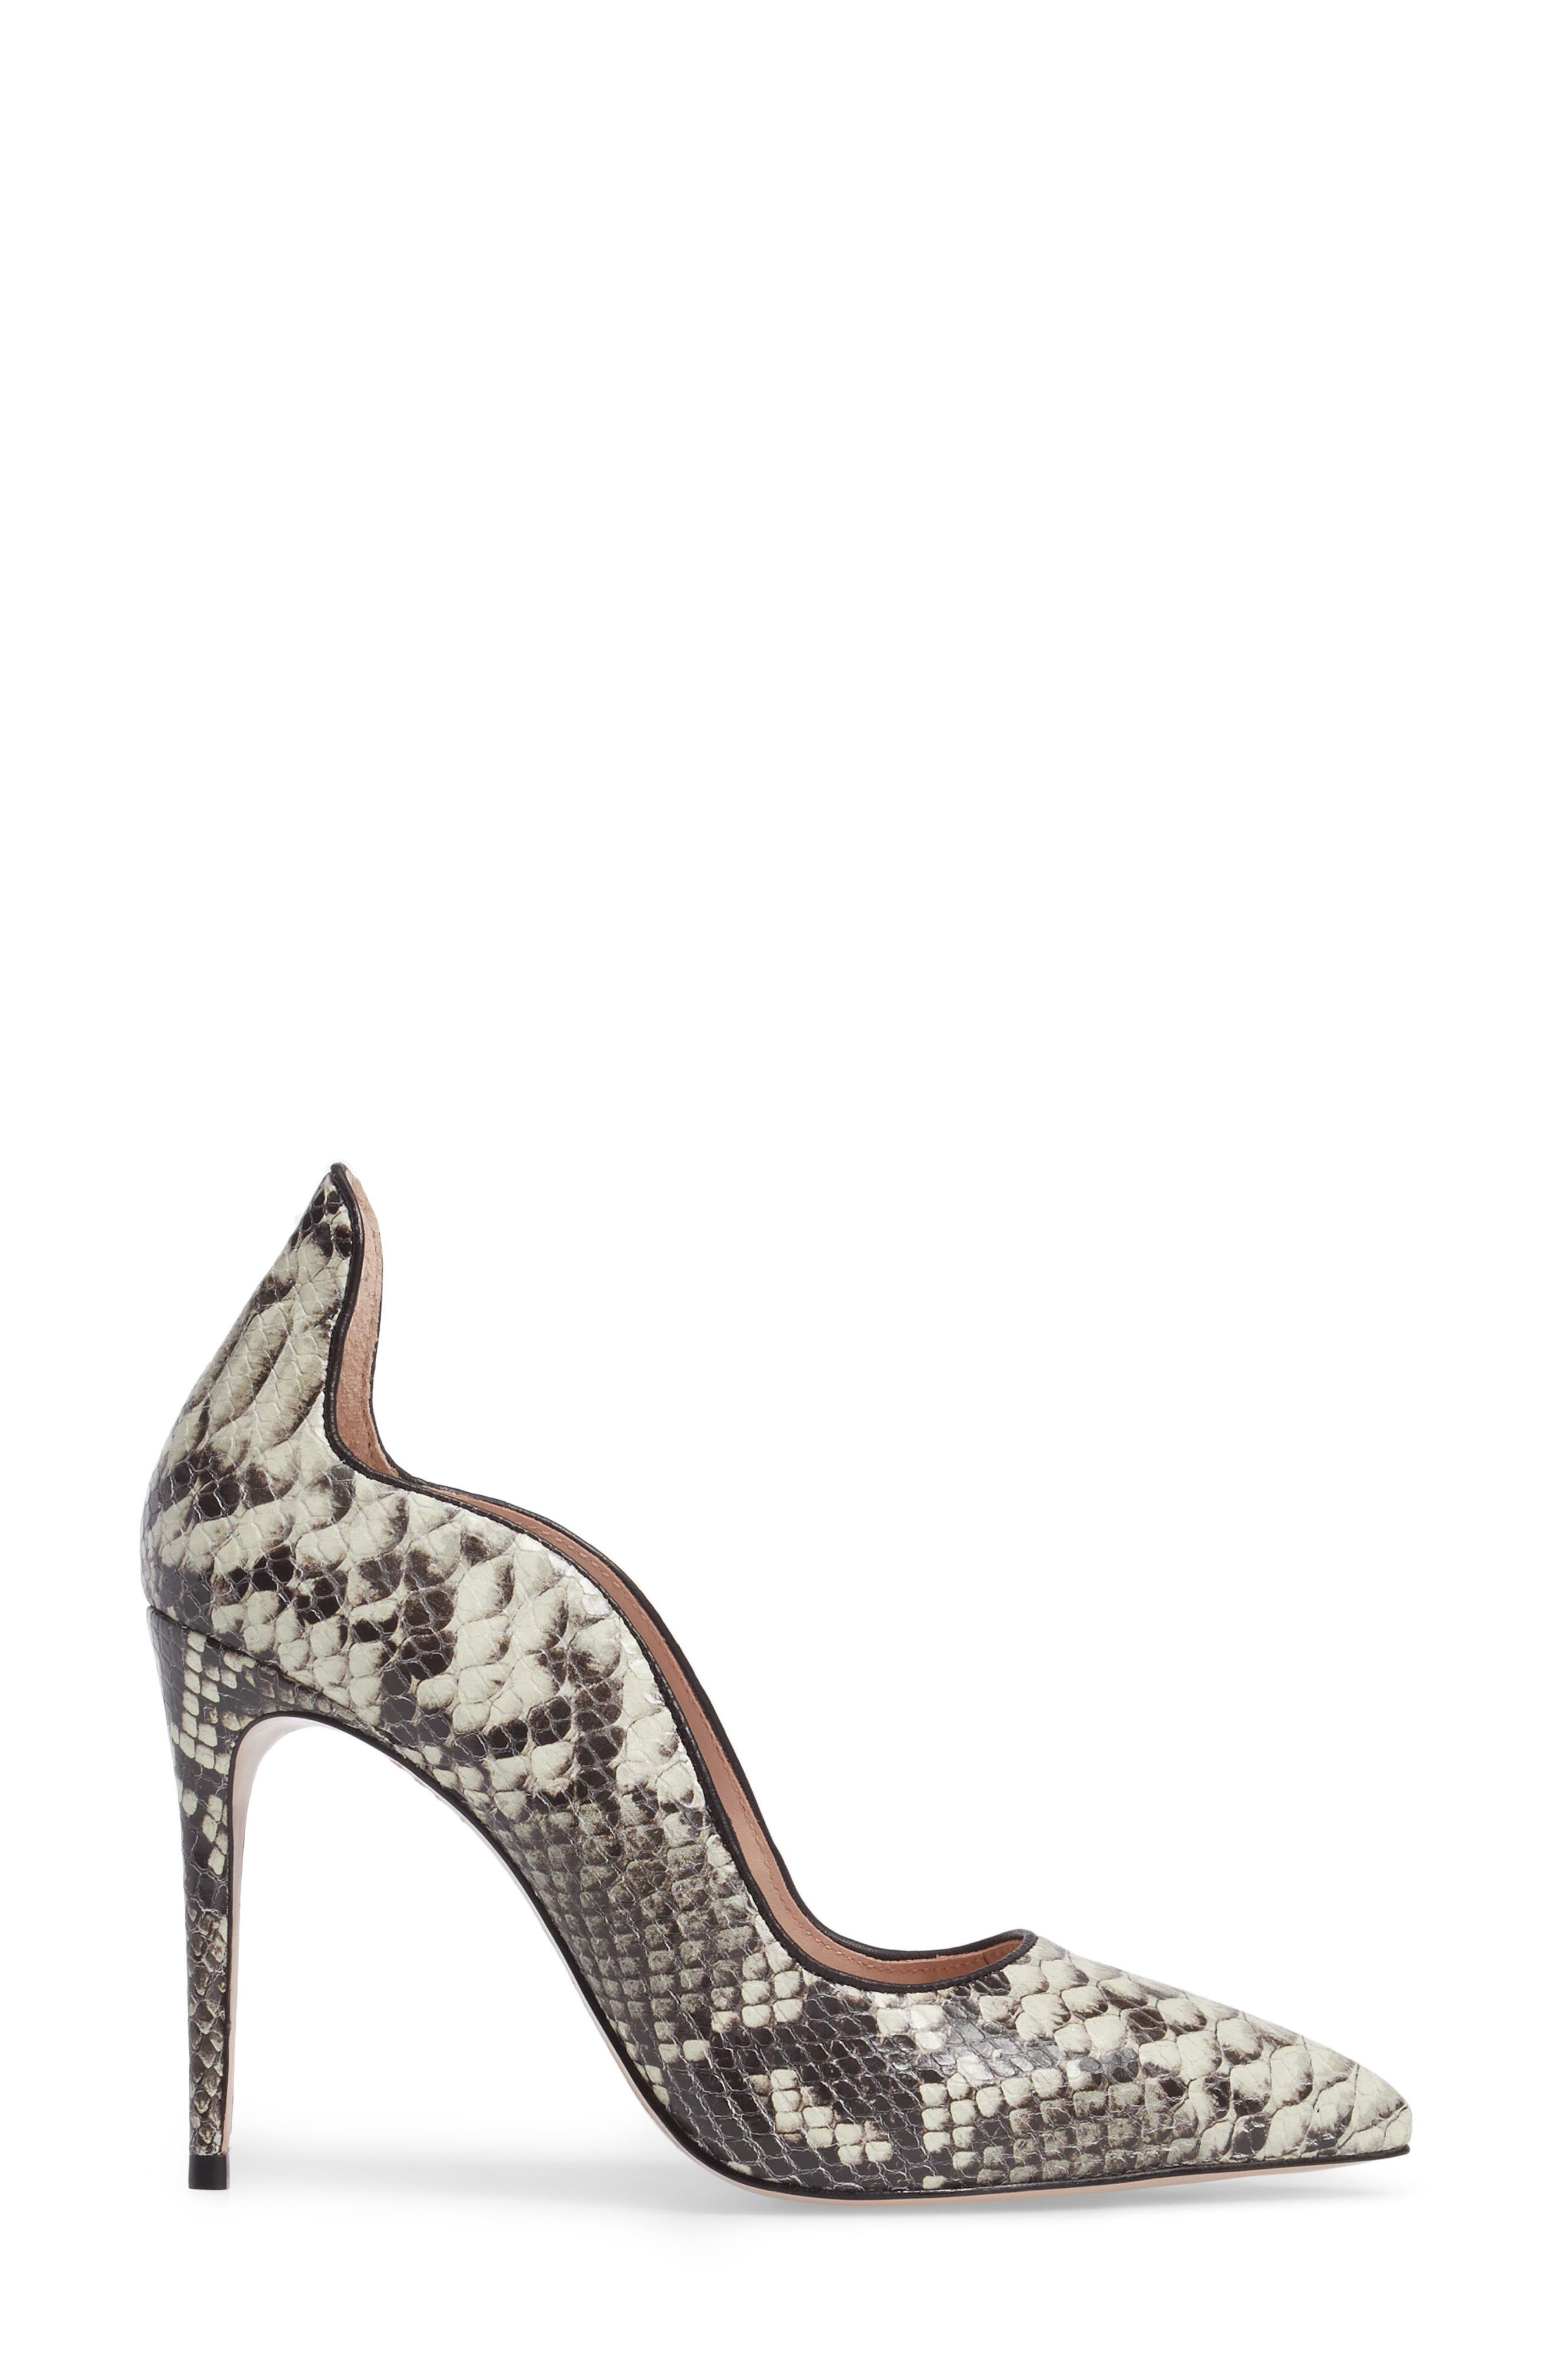 Anika II Curved Pump,                             Alternate thumbnail 3, color,                             Natural Embossed Leather